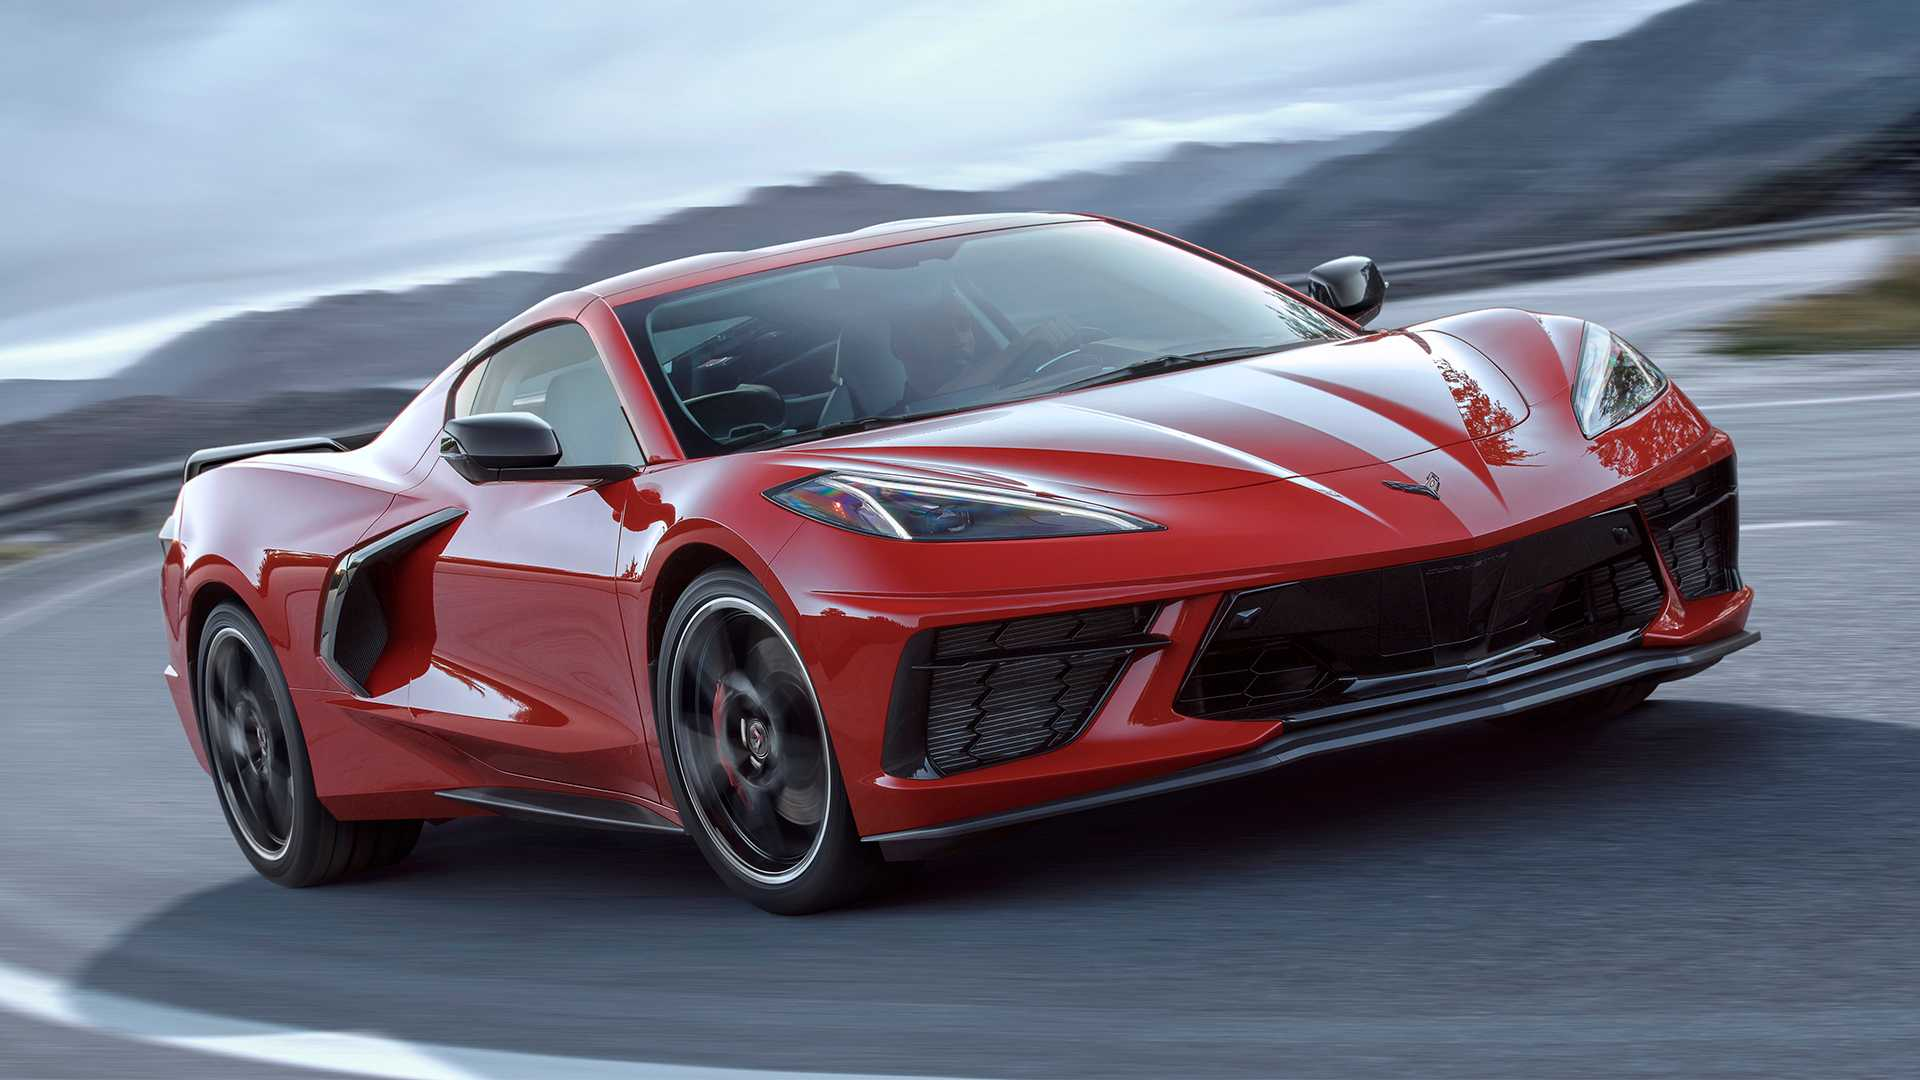 Chevy Build And Price >> 2020 Chevy Corvette Options List What Everything Costs